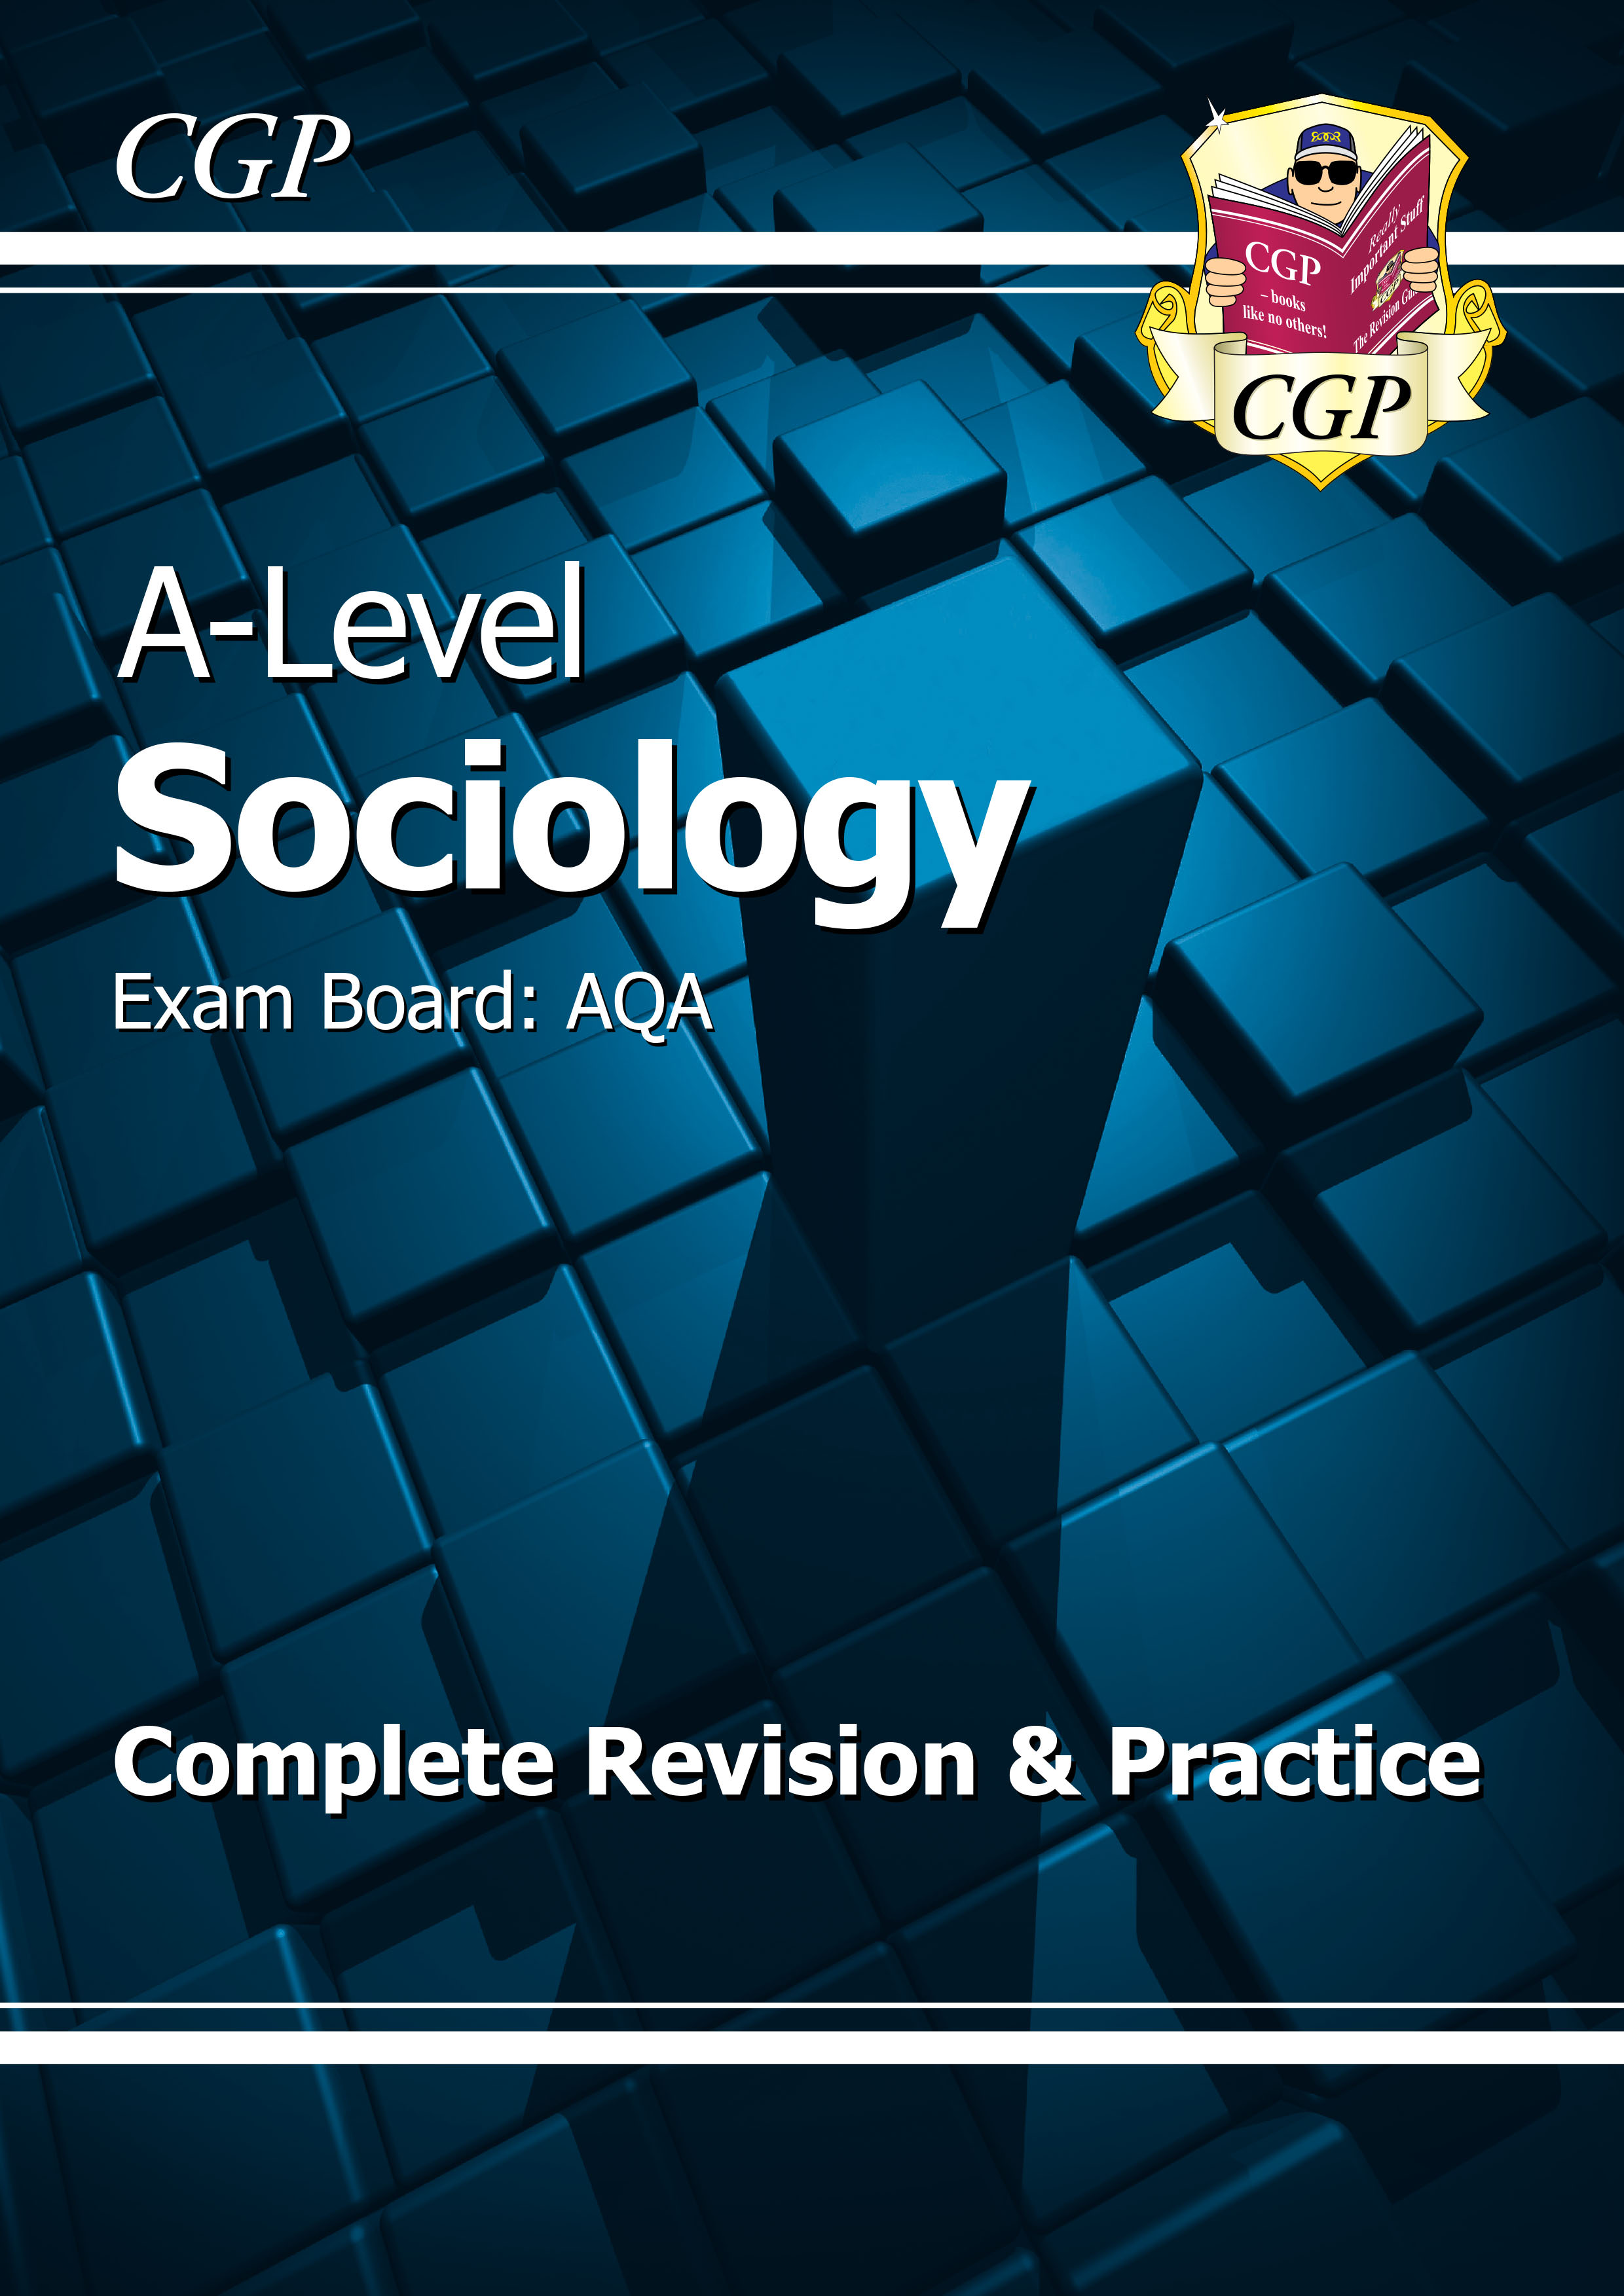 SYAR72DK - A-Level Sociology: AQA Year 1 & 2 Complete Revision & Practice